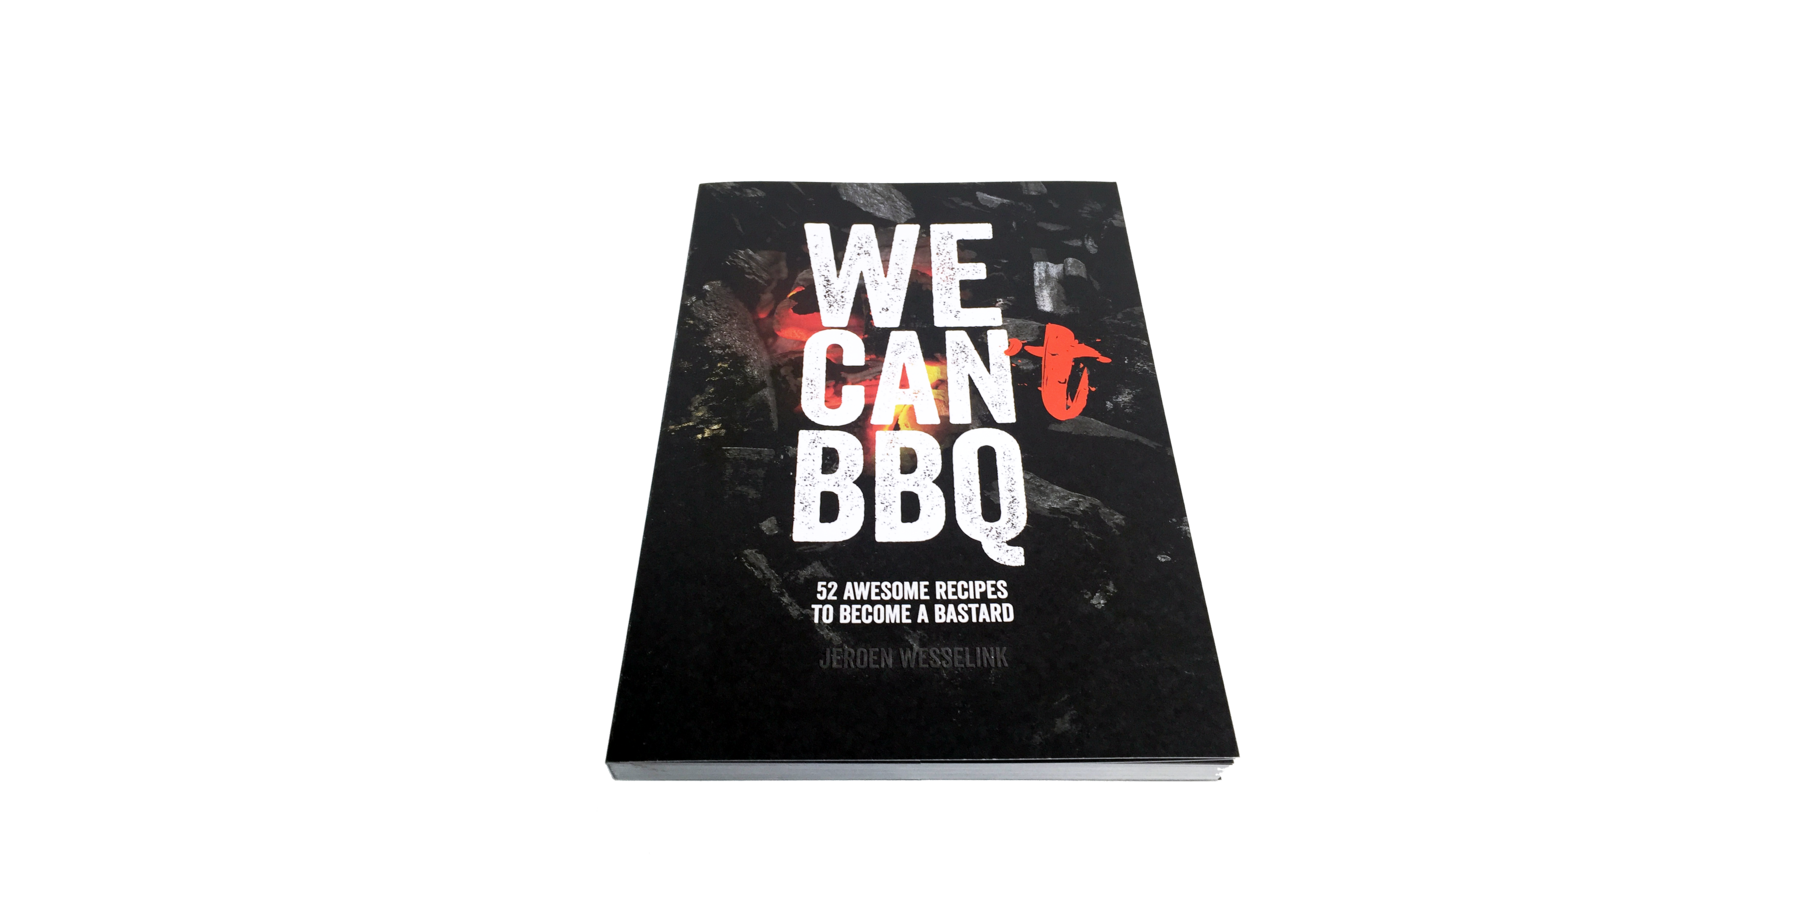 We can BBQ